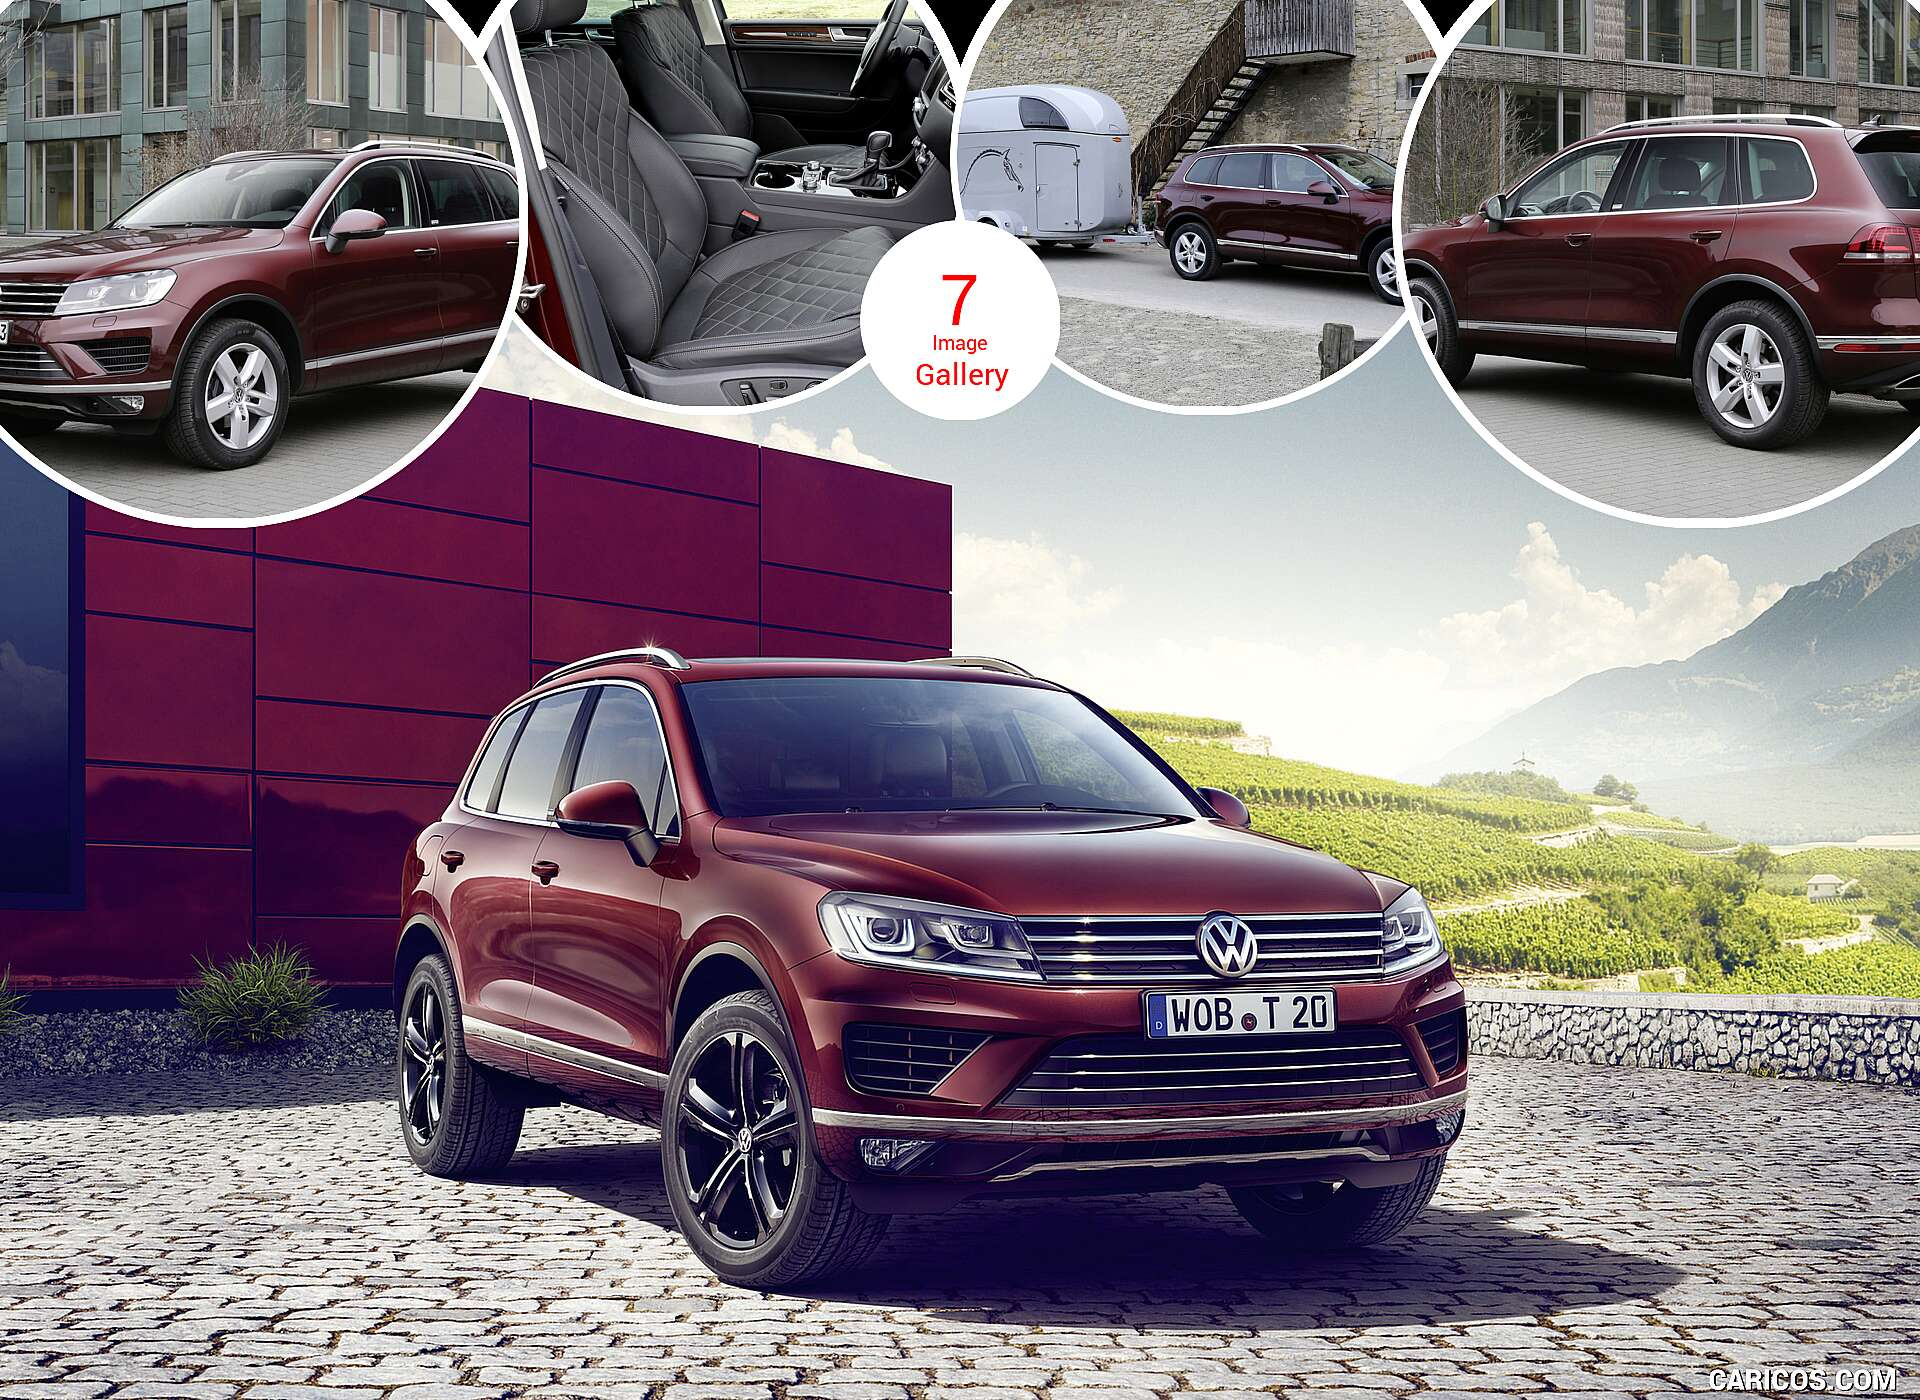 2016 volkswagen touareg executive edition. Black Bedroom Furniture Sets. Home Design Ideas